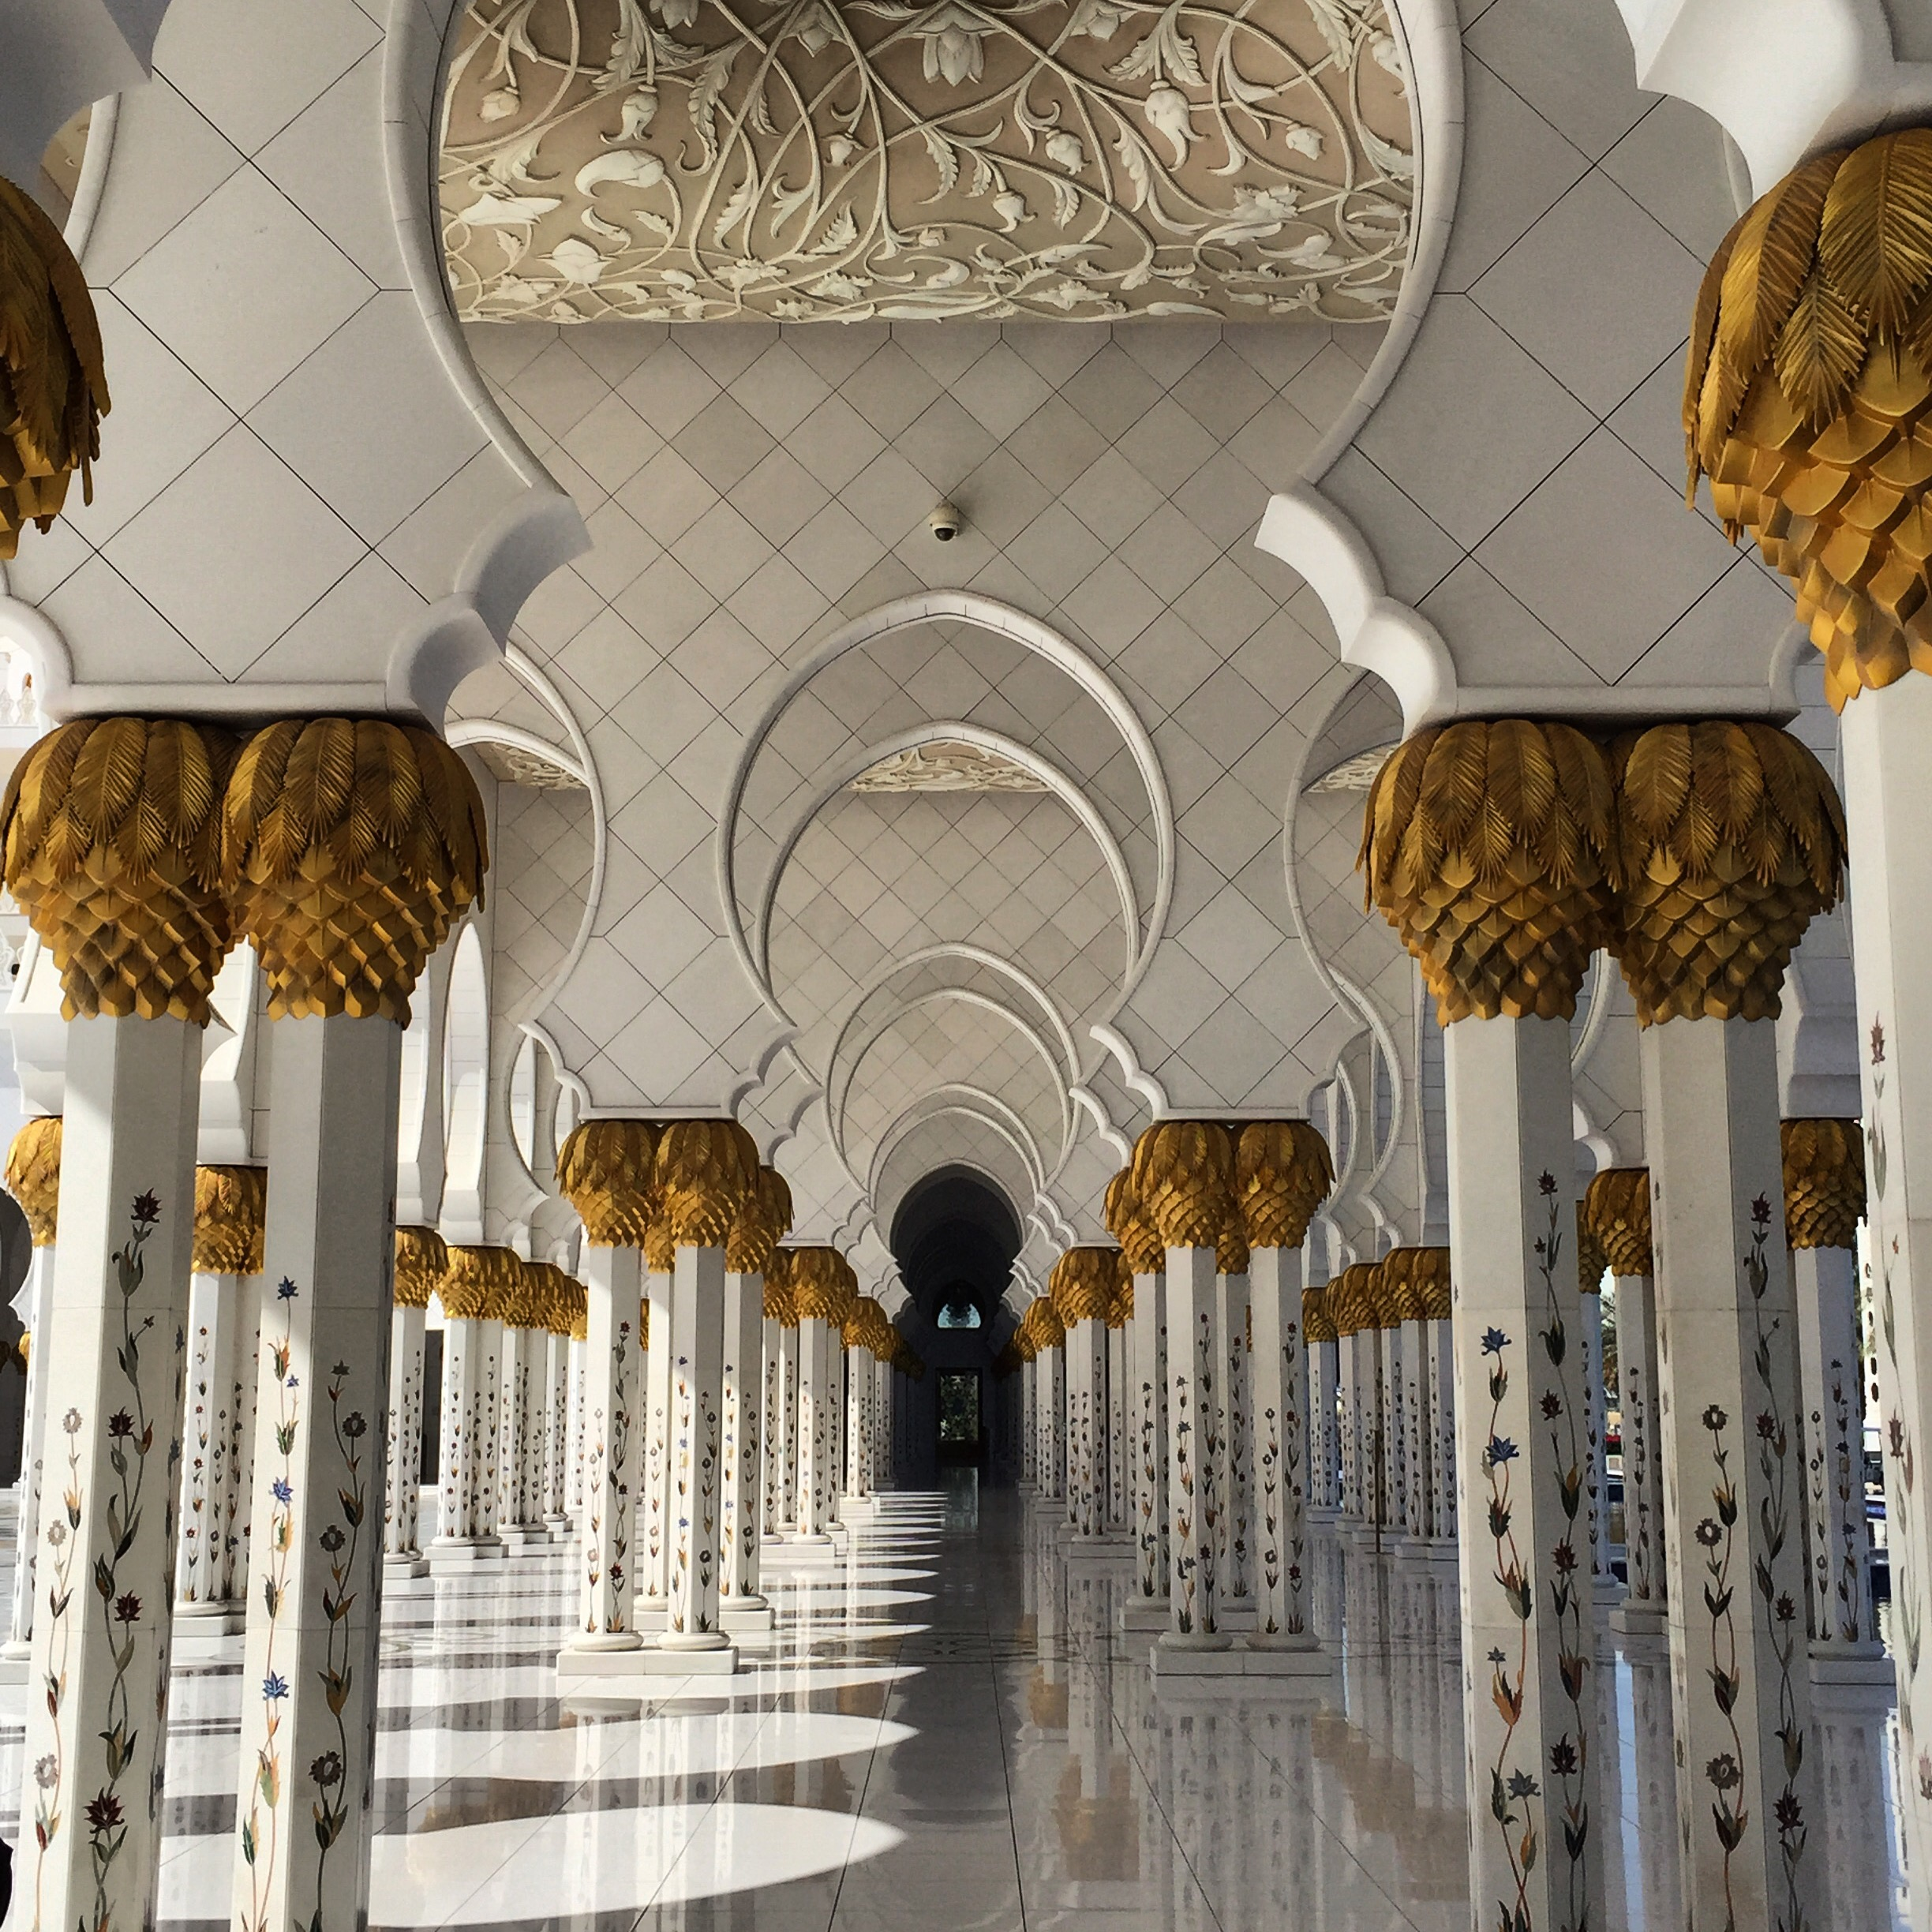 Sheikh Zayed Grand Mosque (Arabic: جامع الشيخ زايد الكبير‎) in Abu Dhabi